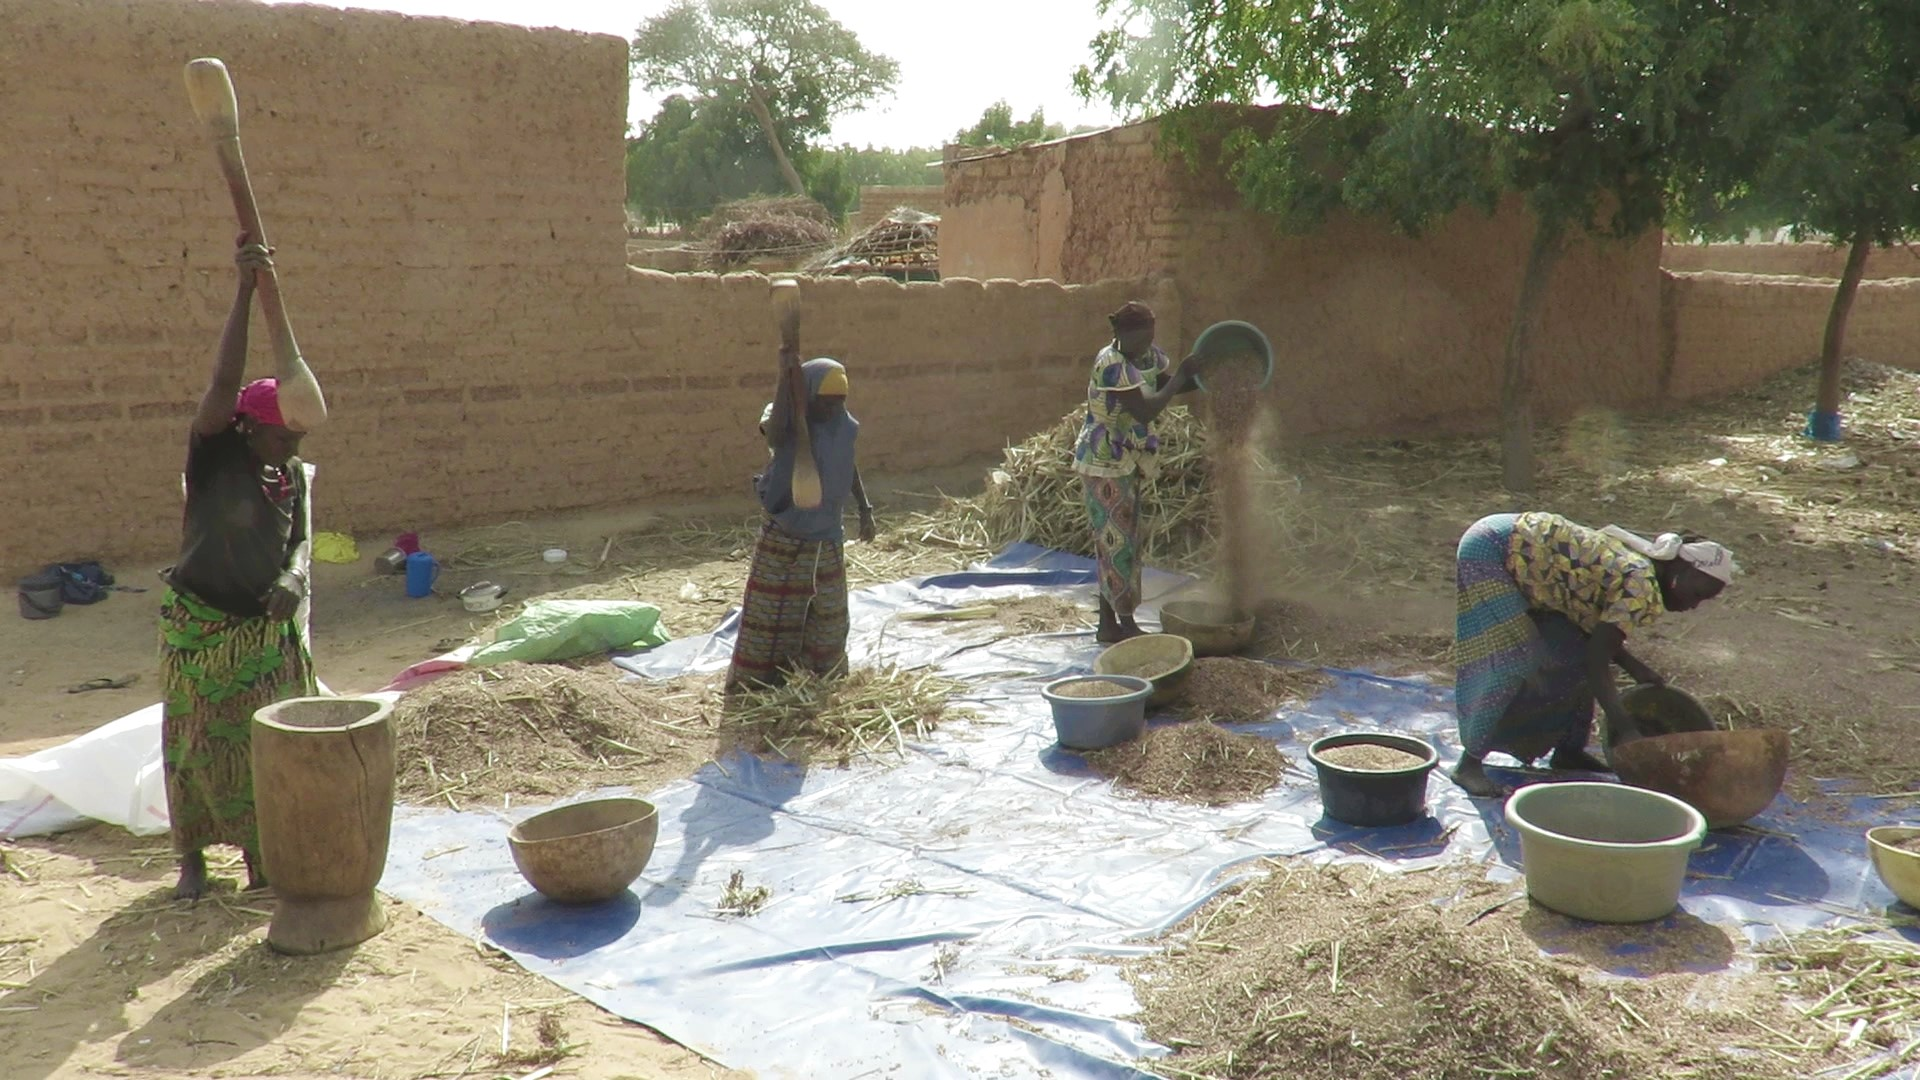 Women in Niger pound and sift millet, to separate the grain from the chaff. The Presbyterian Hunger Program has helped fund a grain bank in their town, which will help them safely store grain during the long dry season. The ability to store grain means they will not have to immediately sell their crops and then buy them back later in the season, when the price has increased.